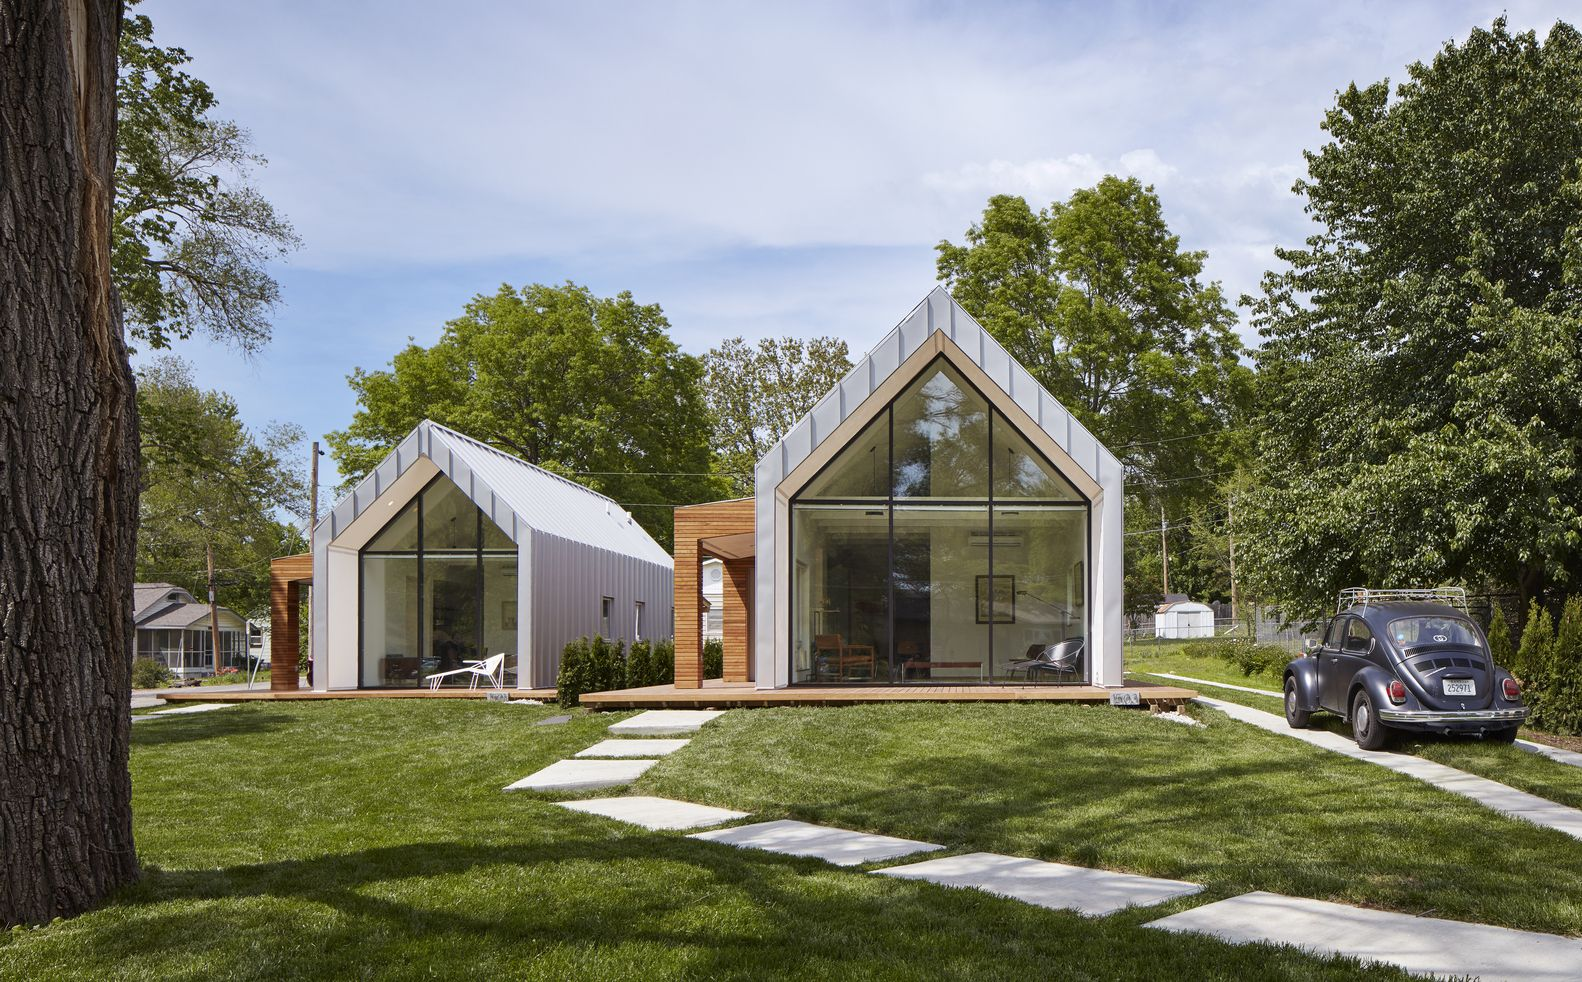 Gallery Of The Houses On Oak Hill Avenue Studio 804 1 In 2020 Architecture House Architecture Sustainable Design